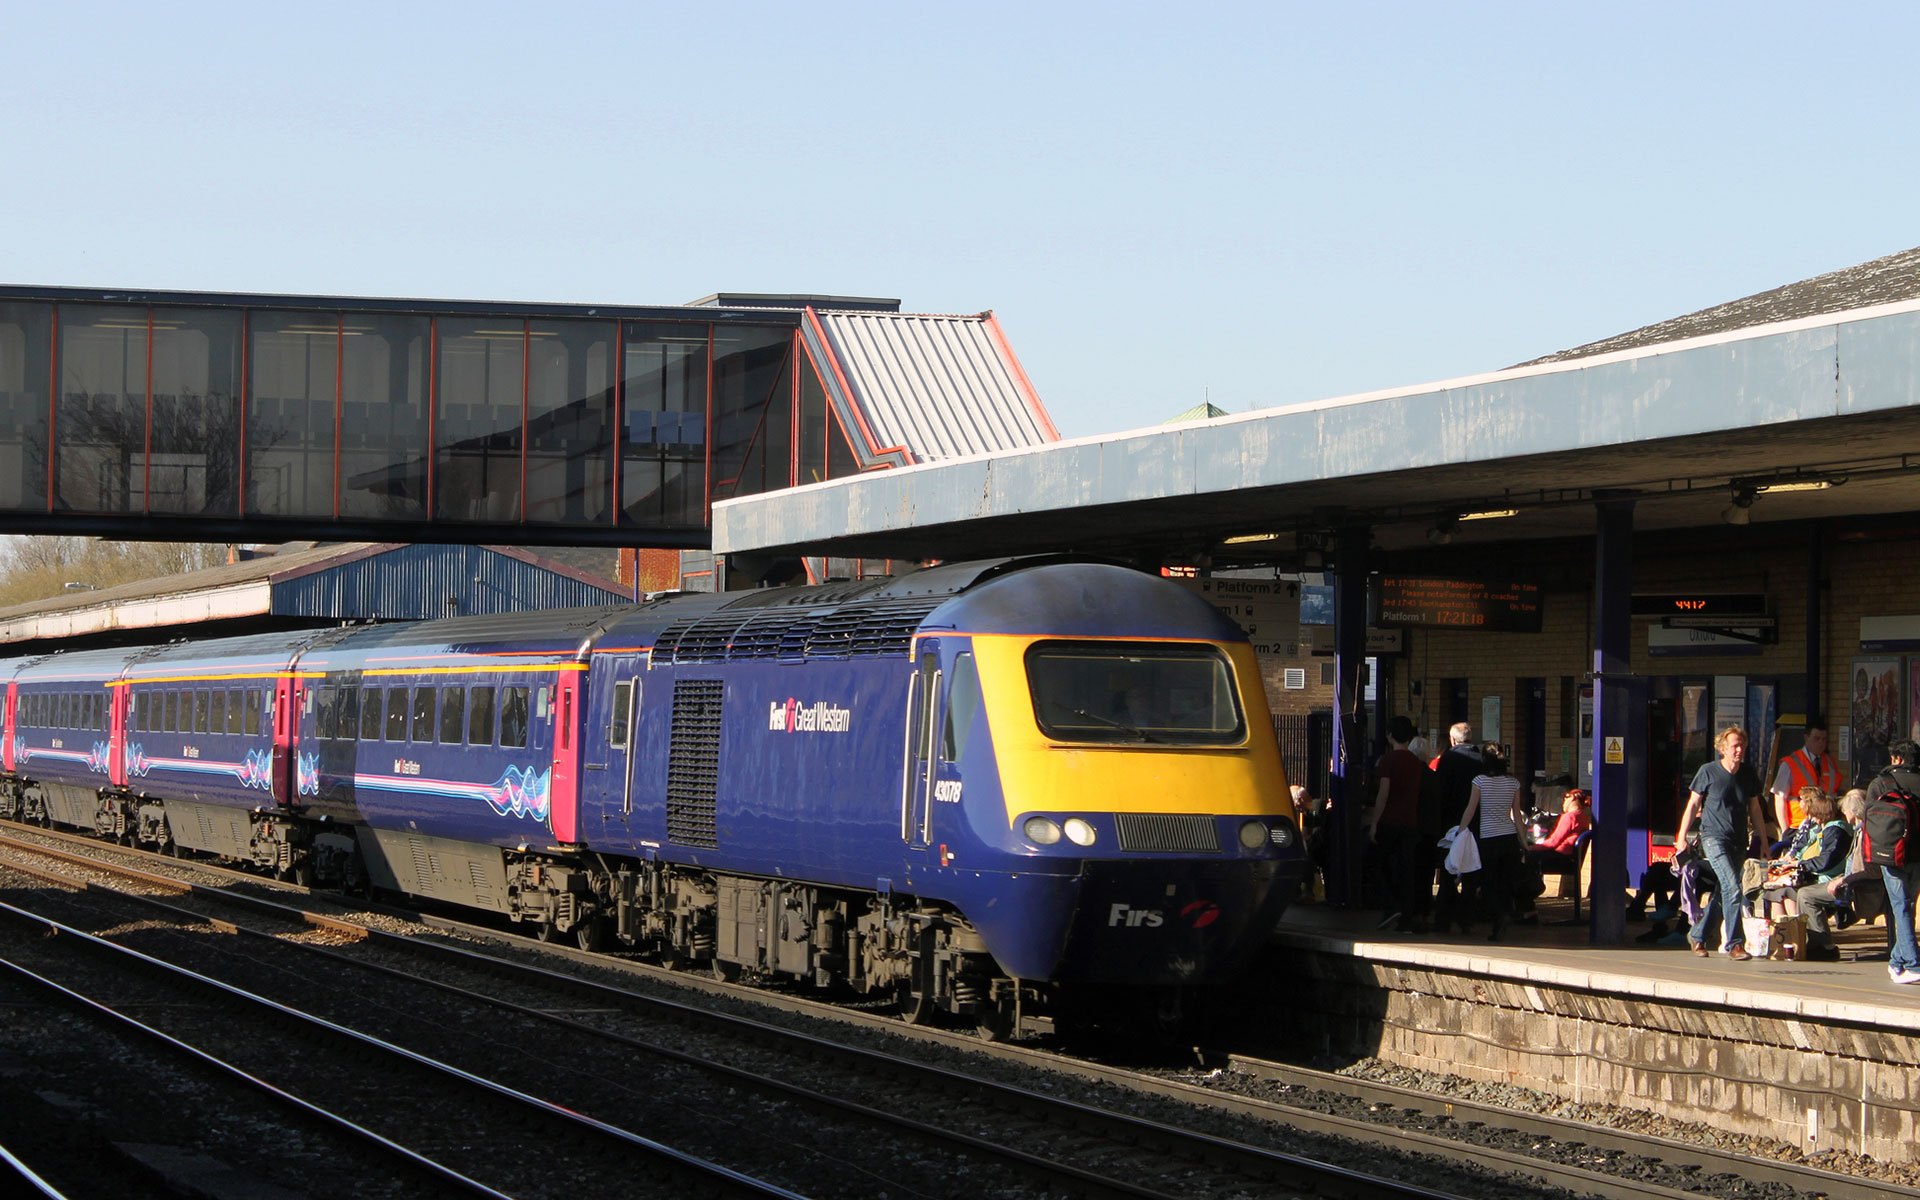 First Great Western's high-speed trains are less likely to be overcrowded on the Oxford to London line than the local services on the same route (photo © Georgesixth).